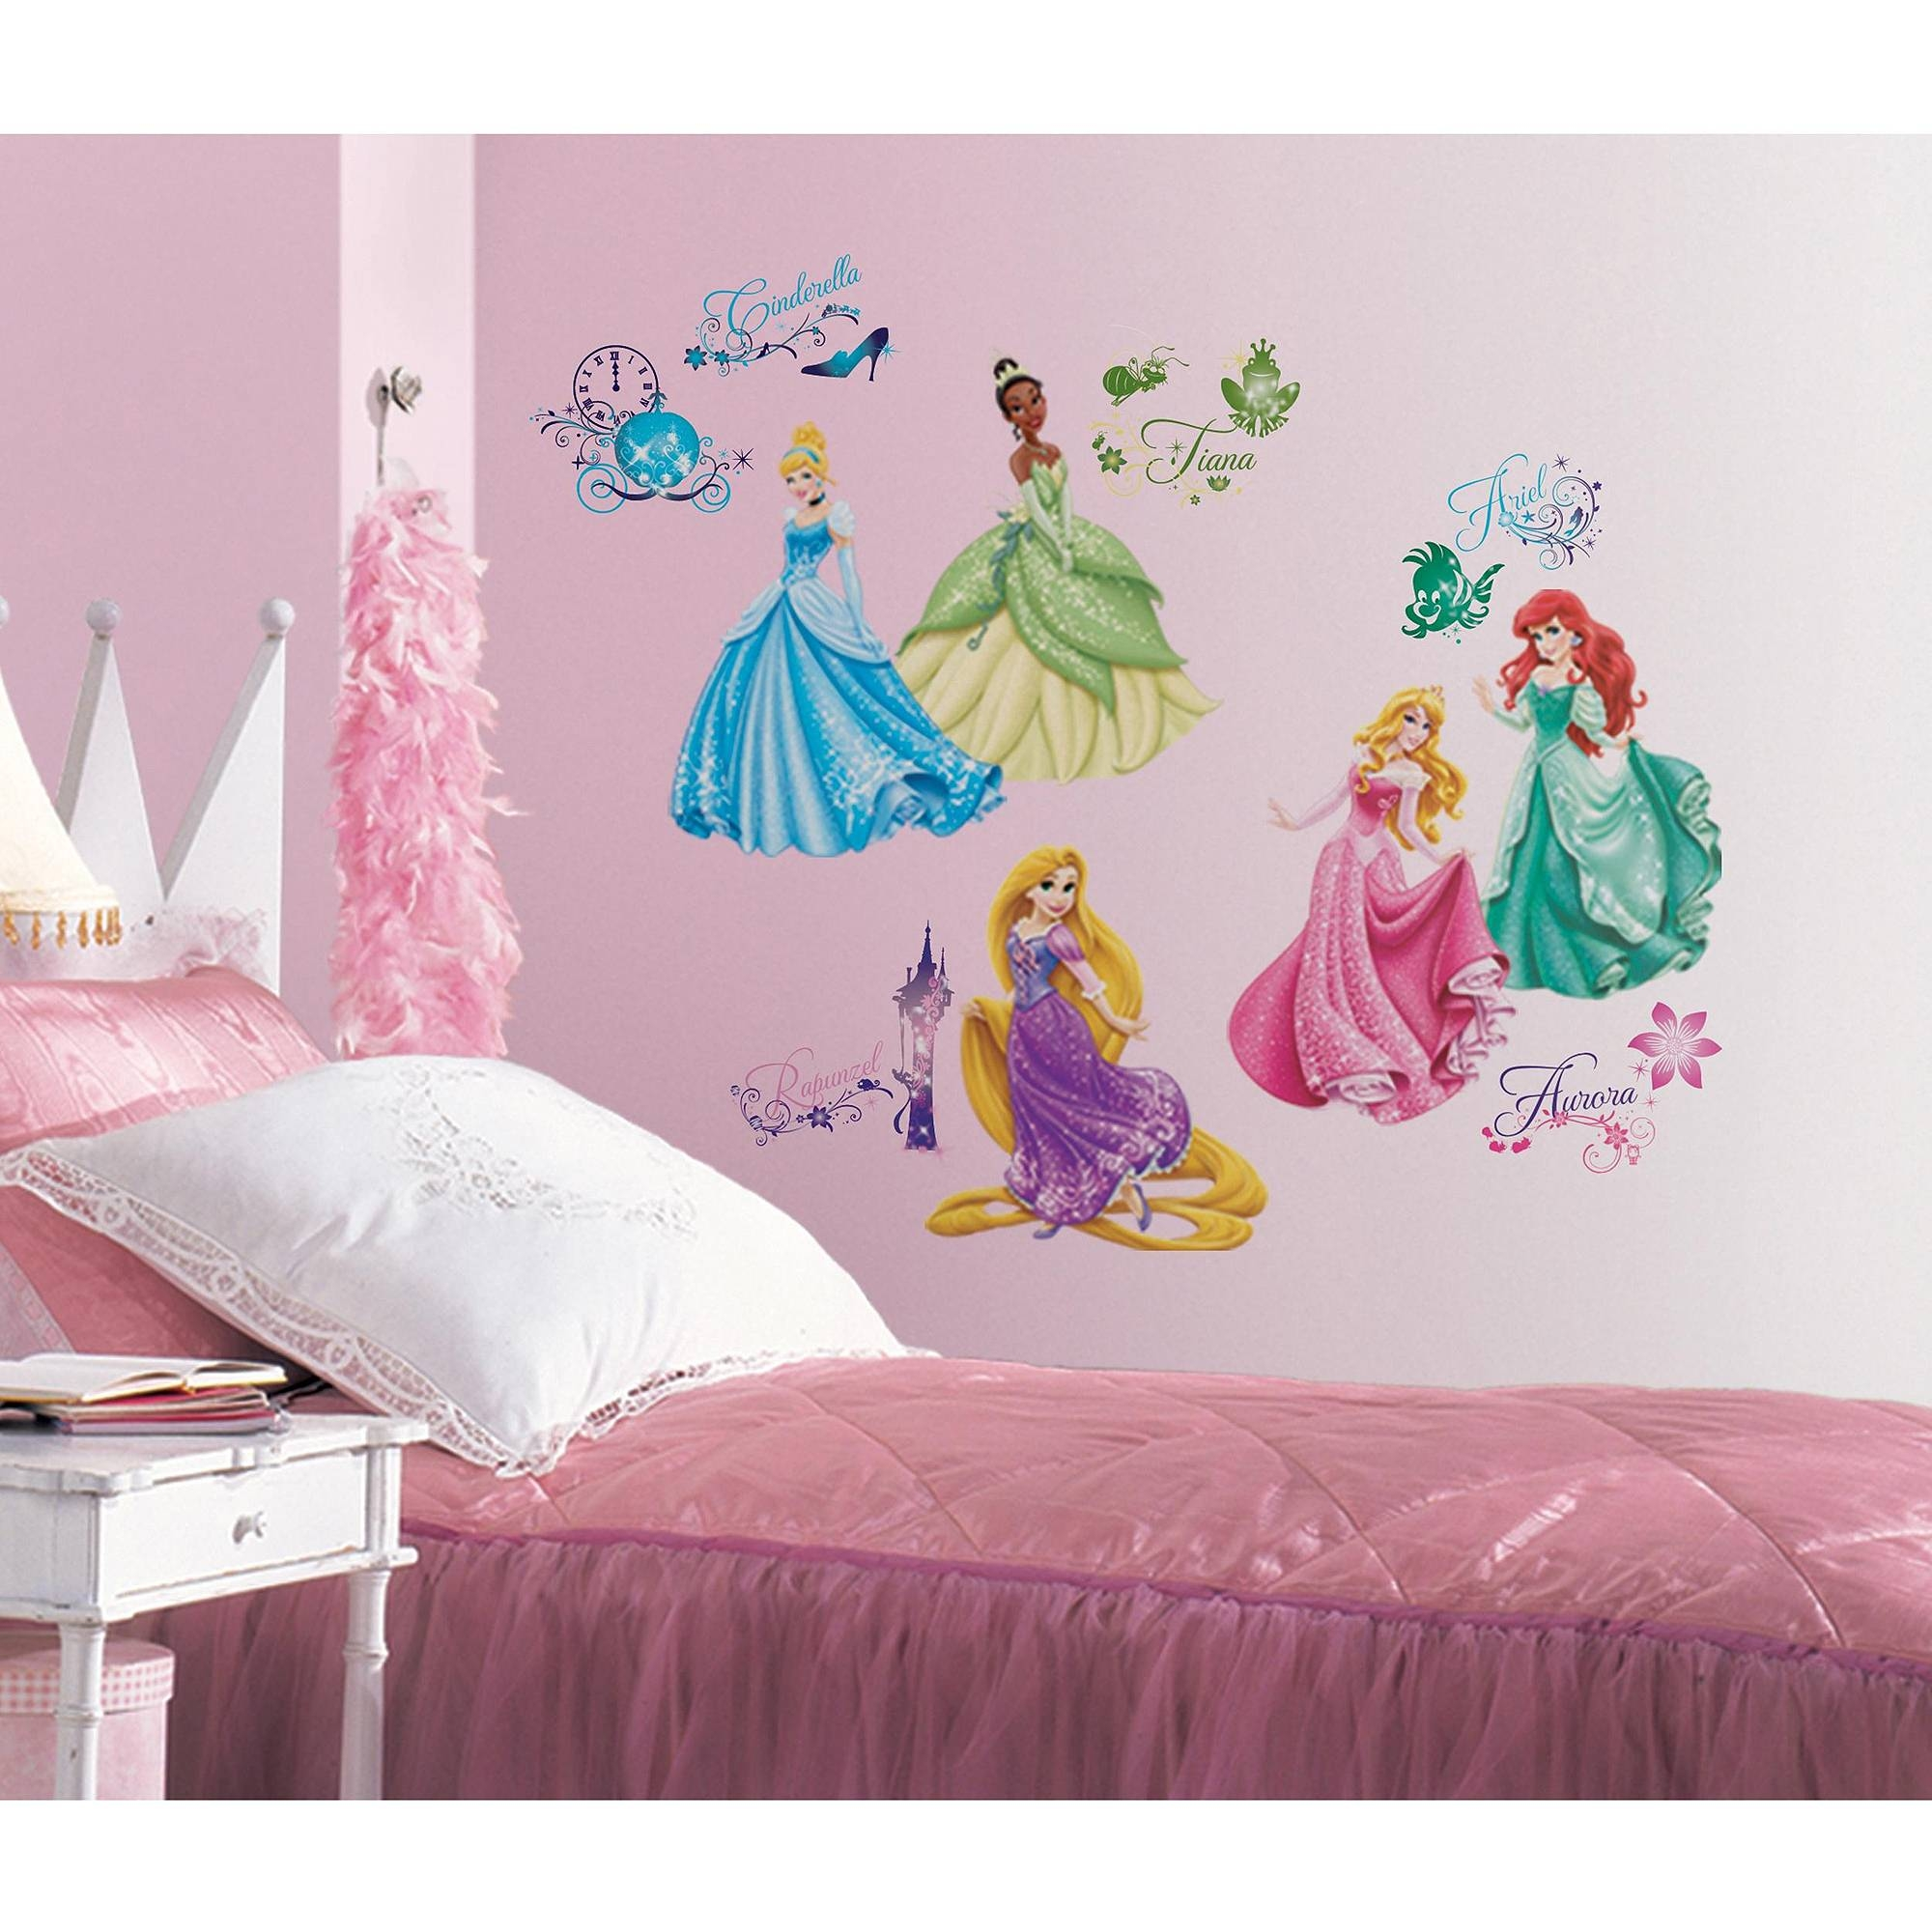 Disney Princess Royal Debut Peel And Stick Wall Decals – Walmart Pertaining To Current Preschool Classroom Wall Decals (View 9 of 30)